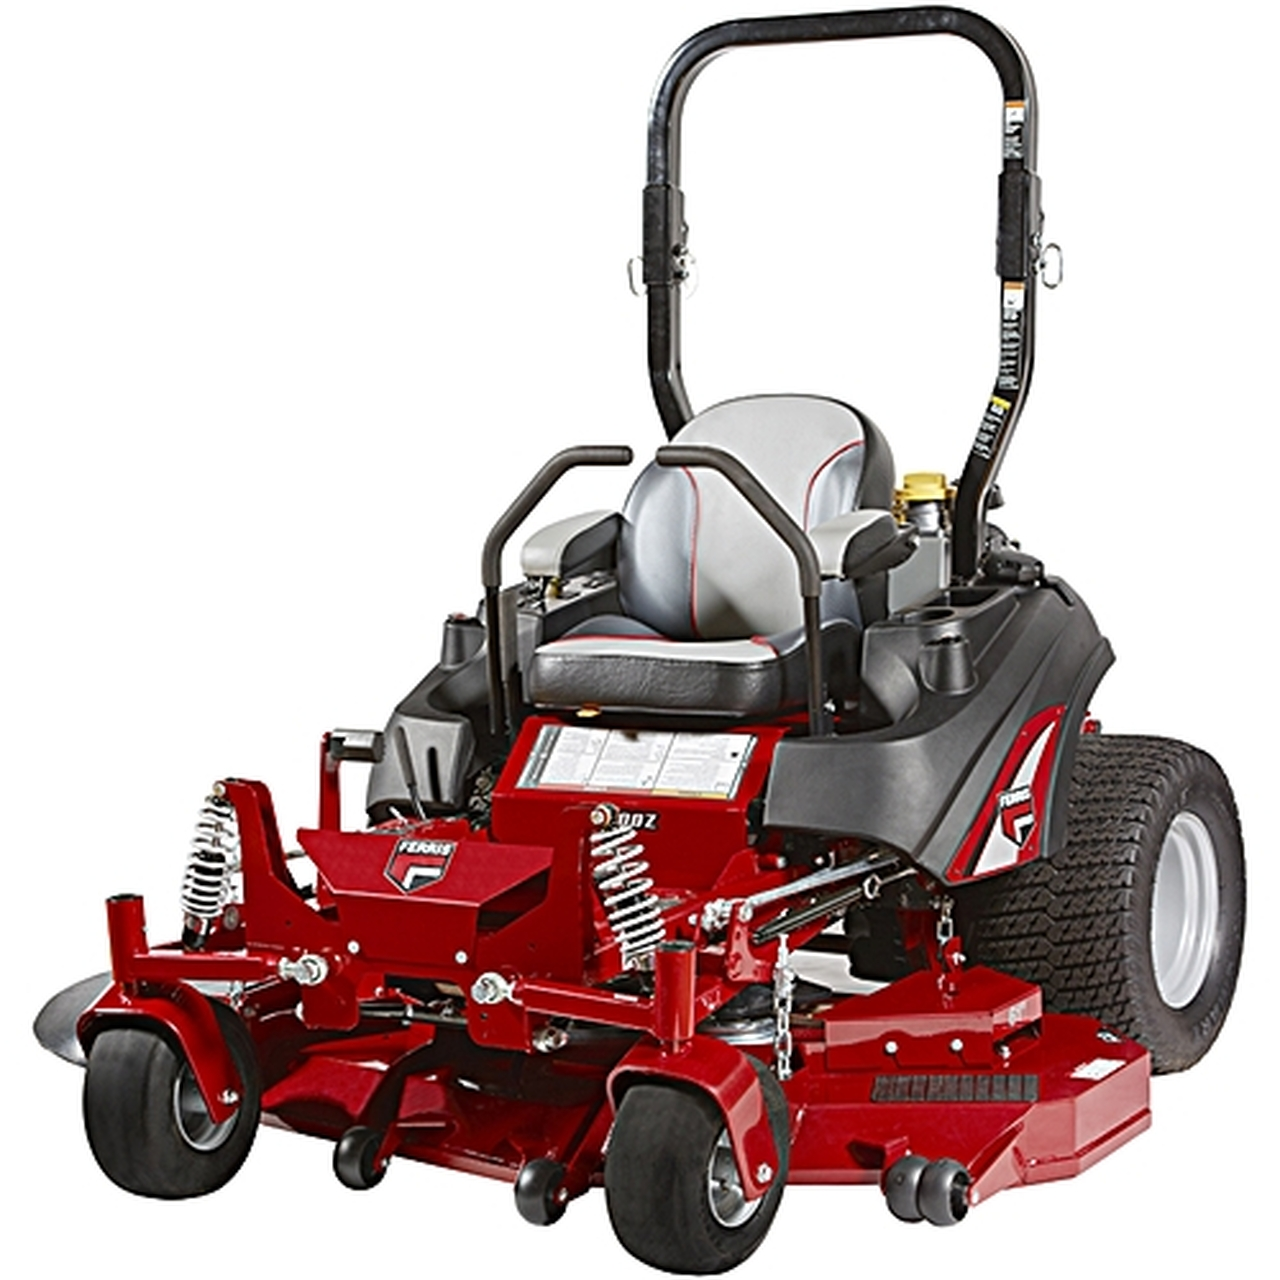 What Are The Things To Consider While Choosing Big Dog Zero Turn Mowers?